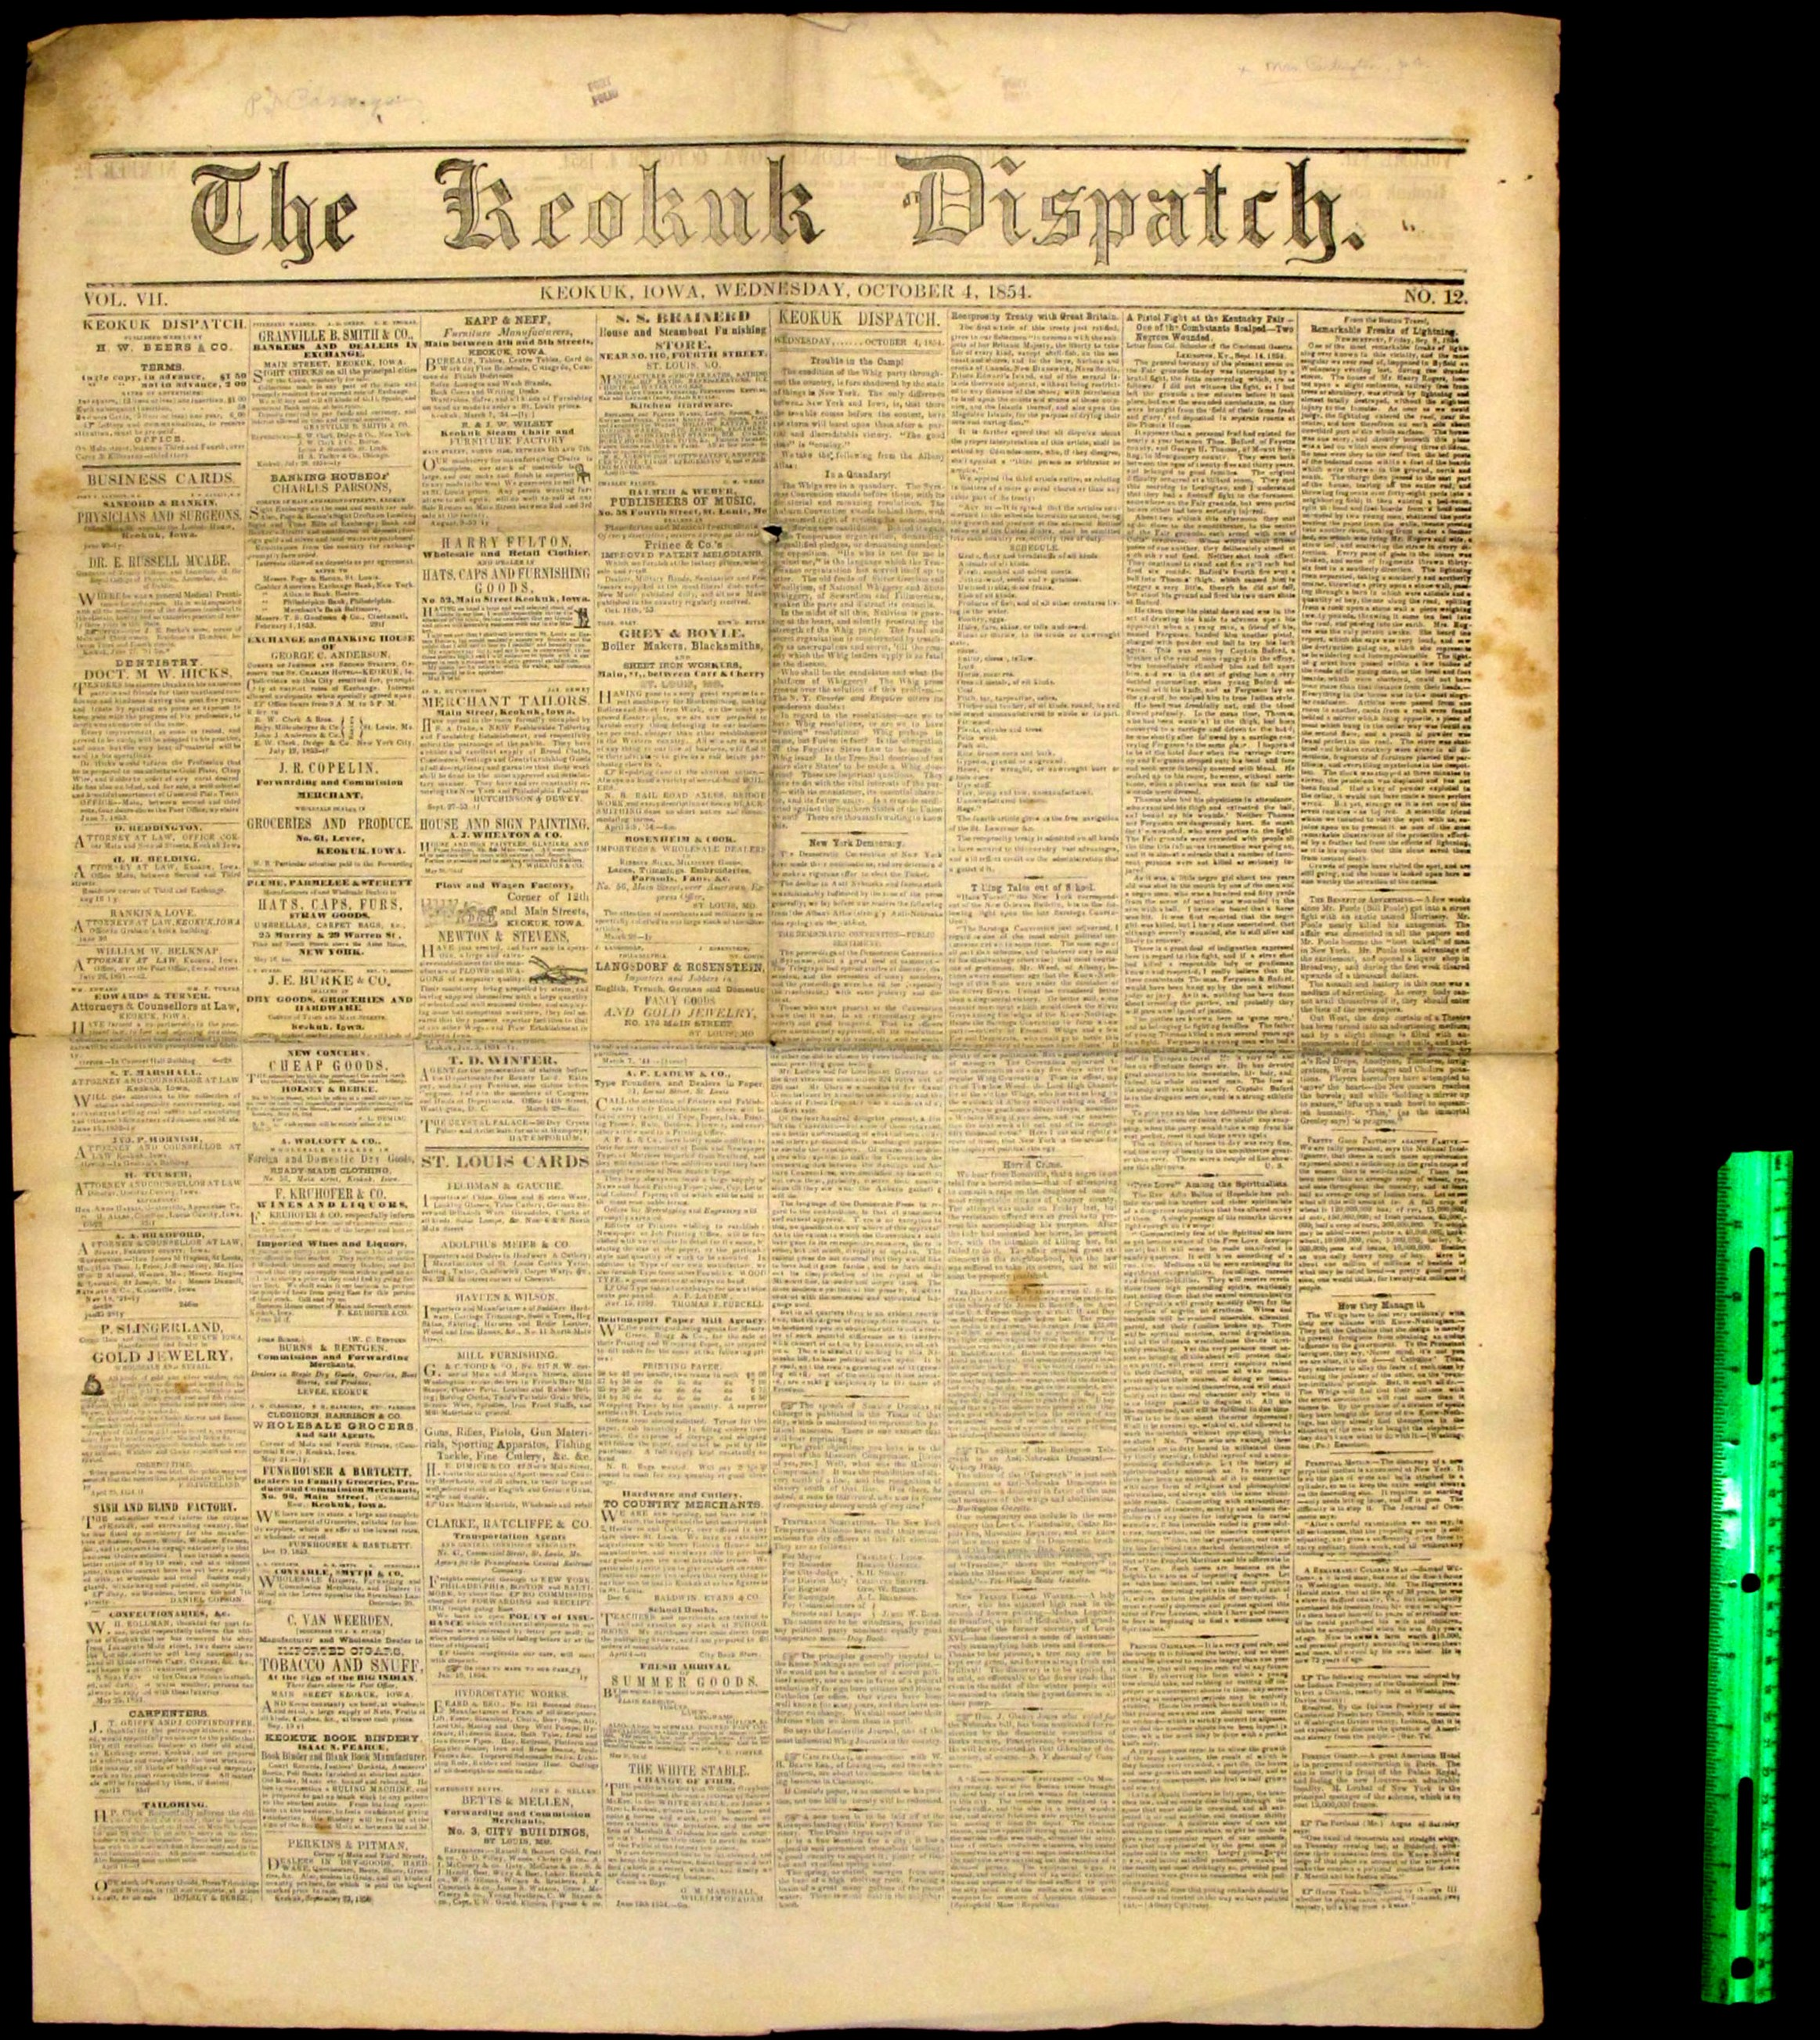 The Keokuk Dispatch (Keokuk, Iowa)